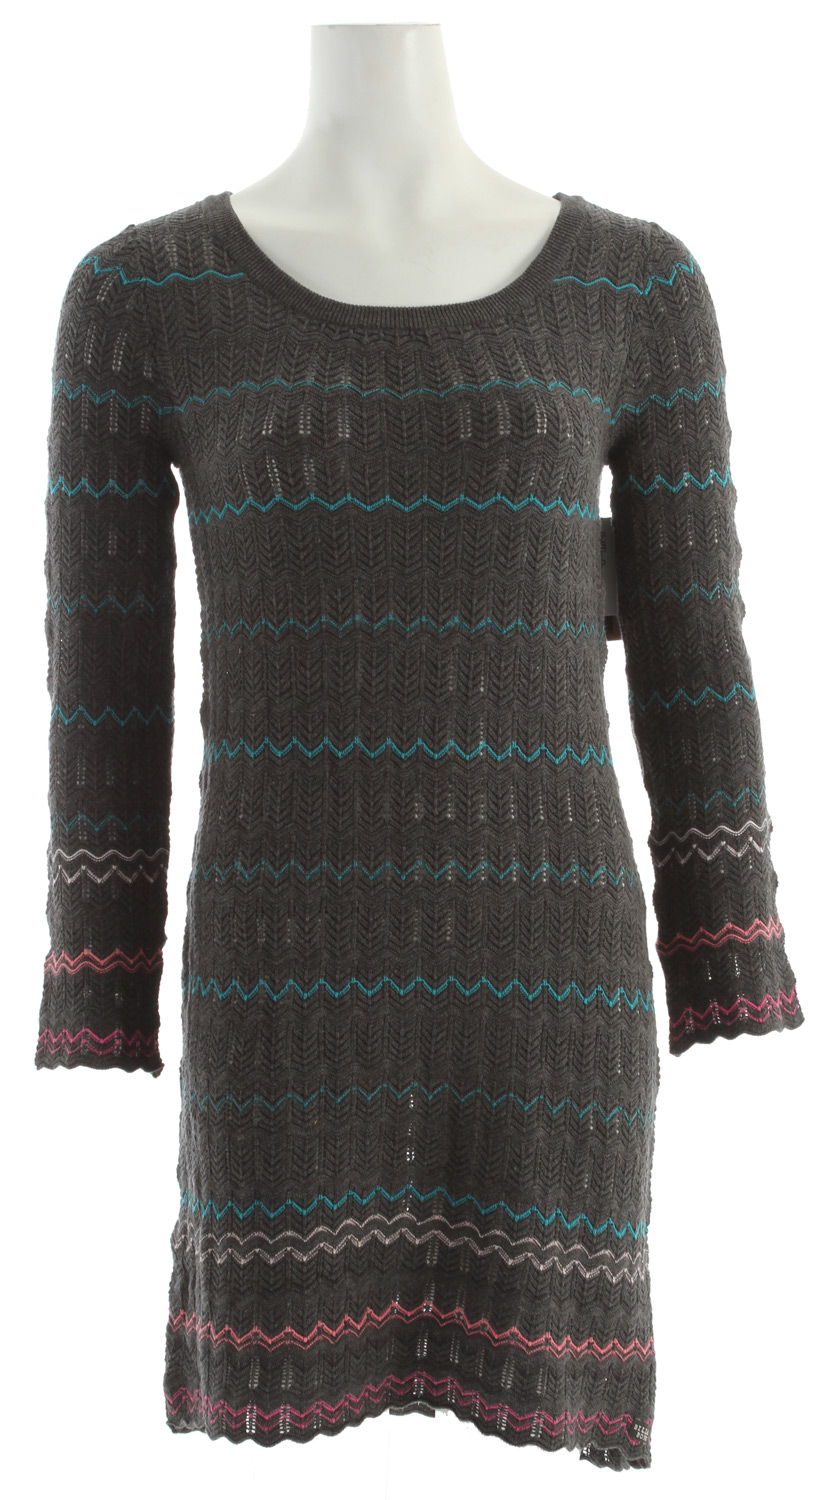 Surf Key Features of the Billabong Forgive And Forget Dress: 60% cotton/40% acrylic long sleeve loose knit pull-over sweater dress w/ pointelle stripe pattern - $51.95